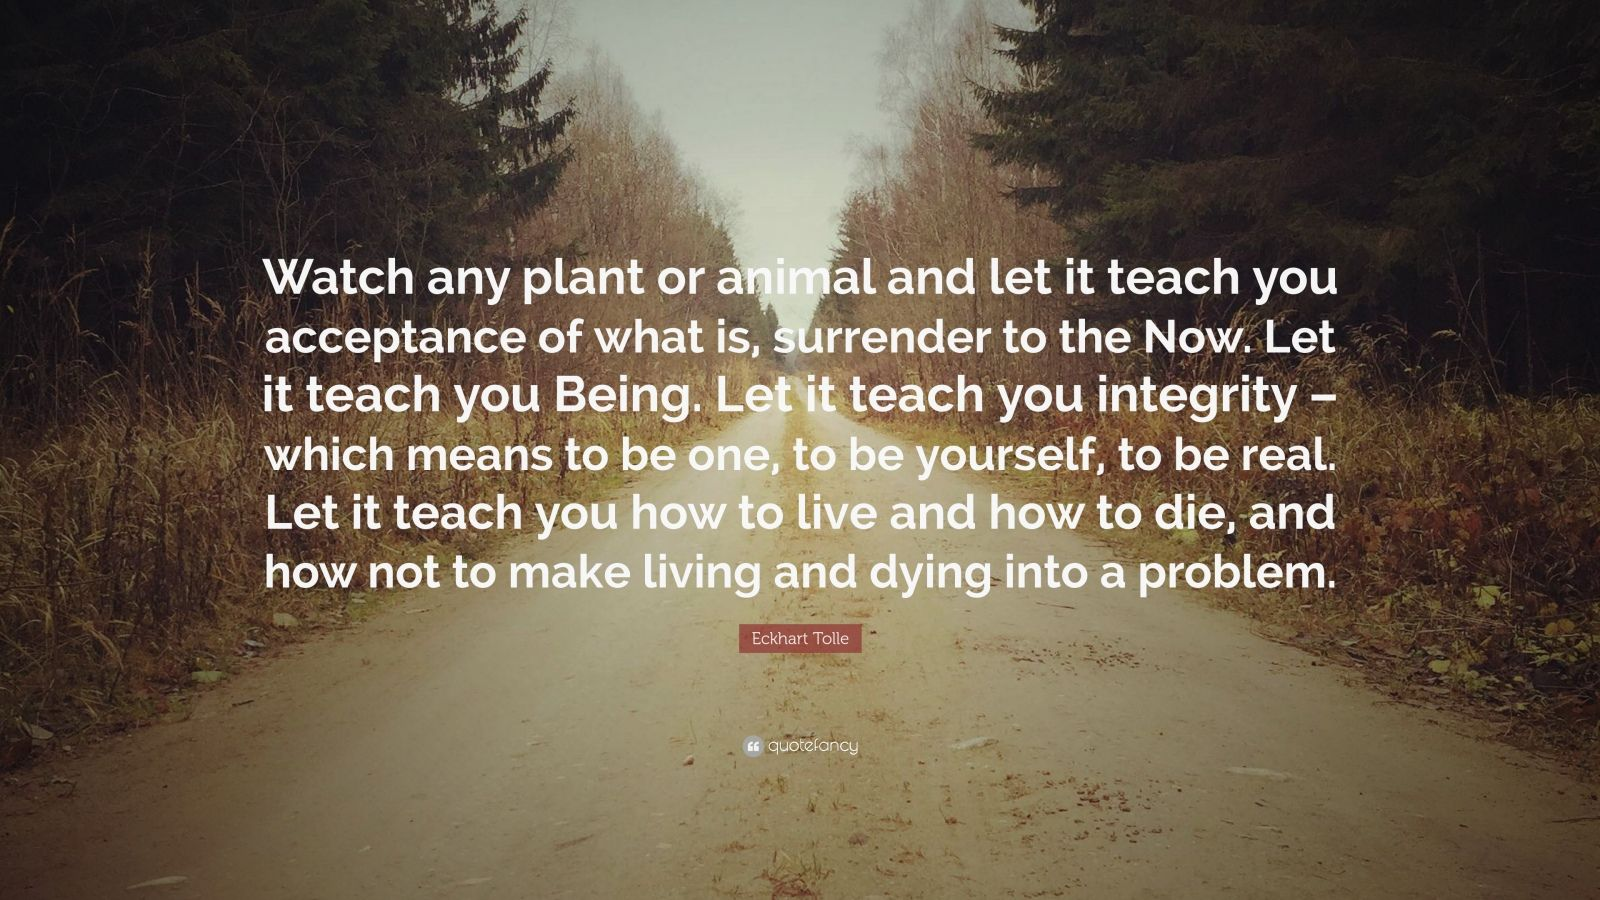 "Eckhart Tolle Quote: ""Watch any plant or animal and let it teach you acceptance of what is, surrender to the Now. Let it teach you Being. Let it teach you integrity – which means to be one, to be yourself, to be real. Let it teach you how to live and how to die, and how not to make living and dying into a problem."""